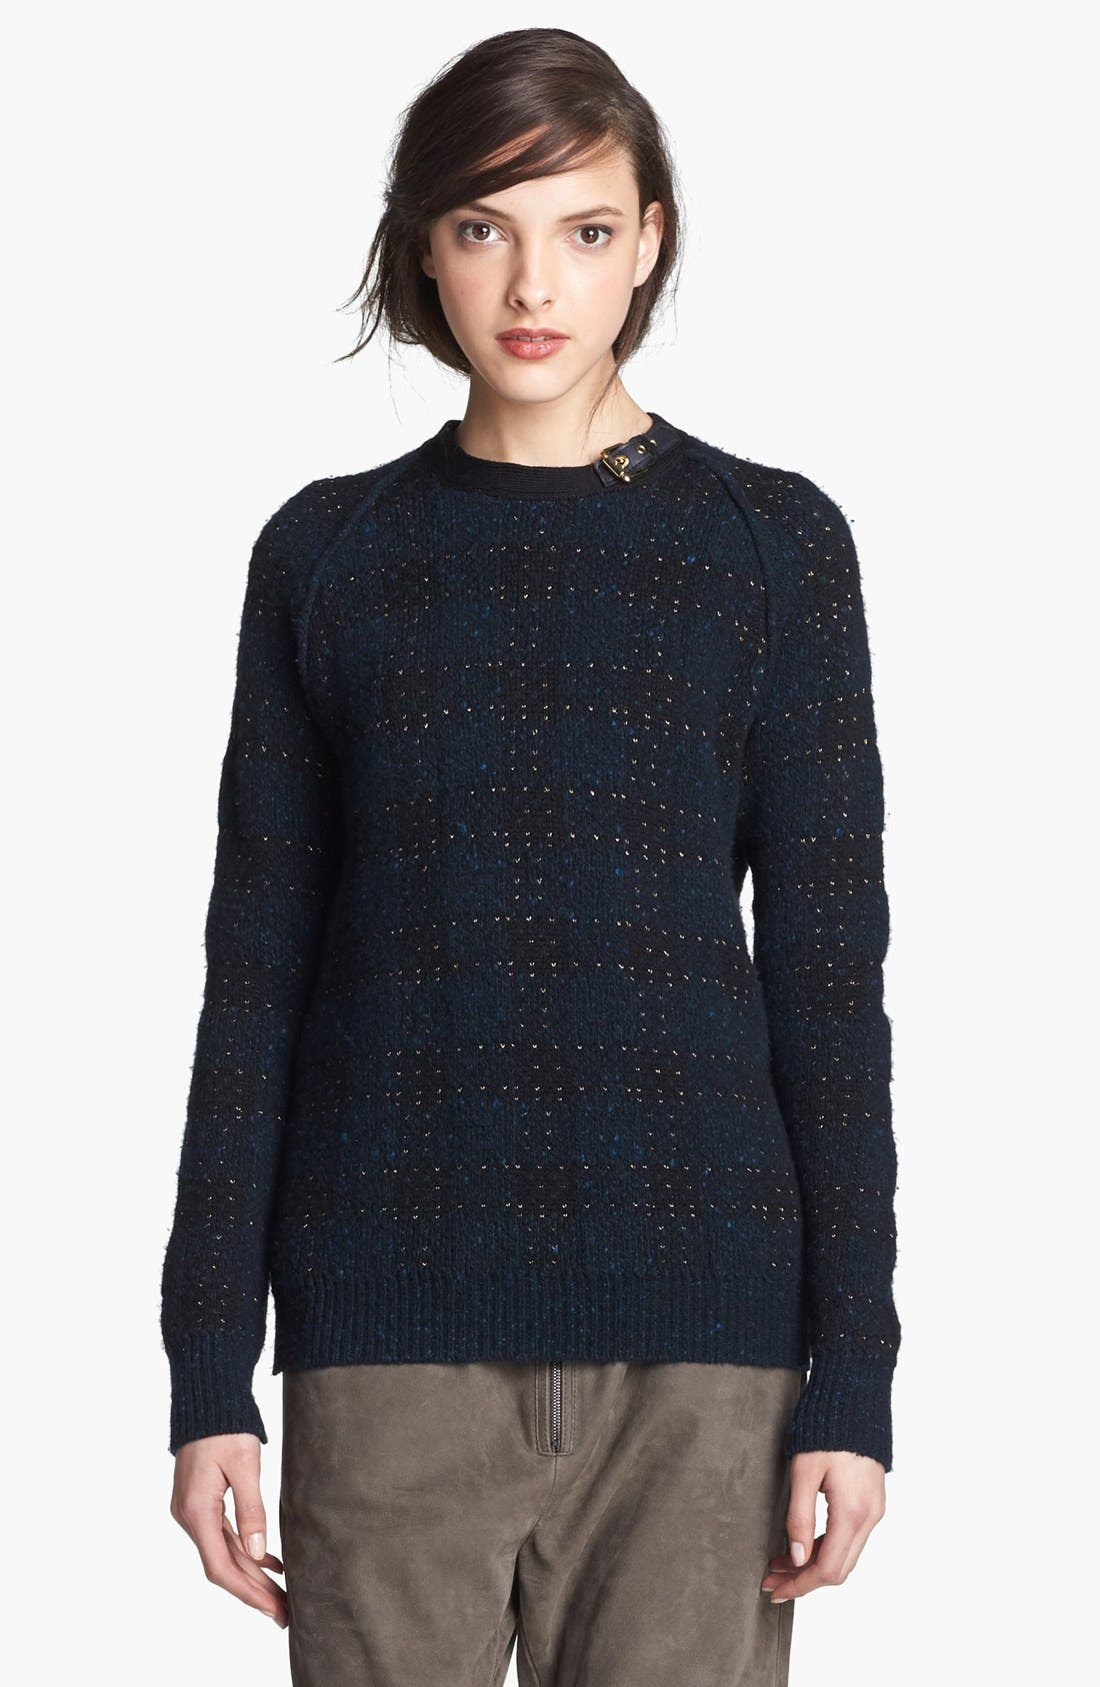 Alternate Image 1 Selected - 3.1 Phillip Lim Plaid Sweater